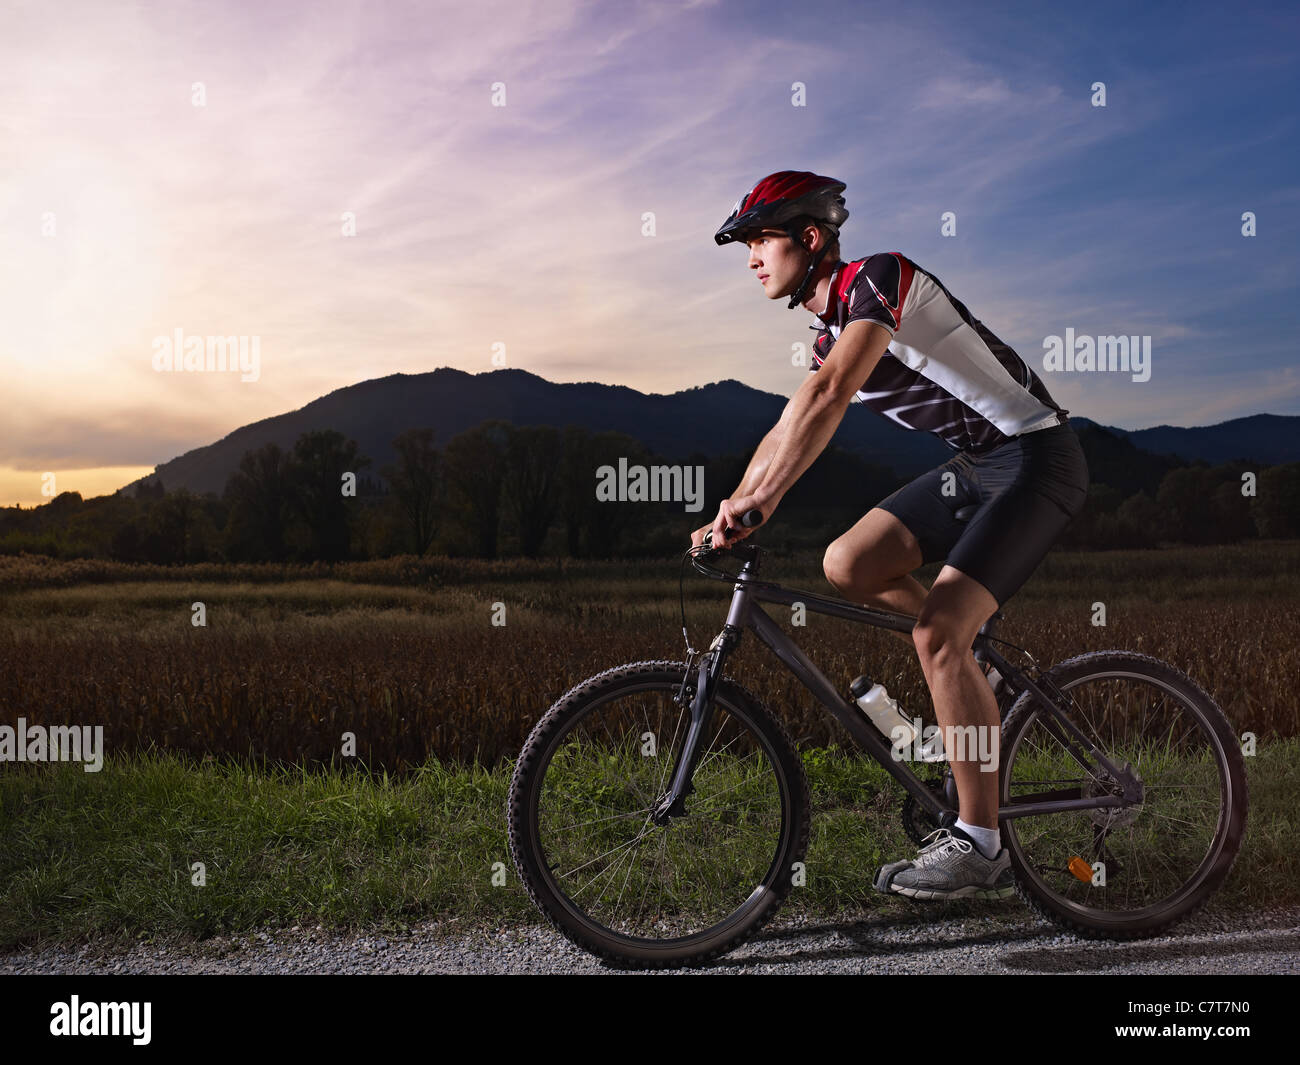 sports activity: young adult cyclist riding mountain bike in the countryside. Horizontal shape, side view, copy - Stock Image